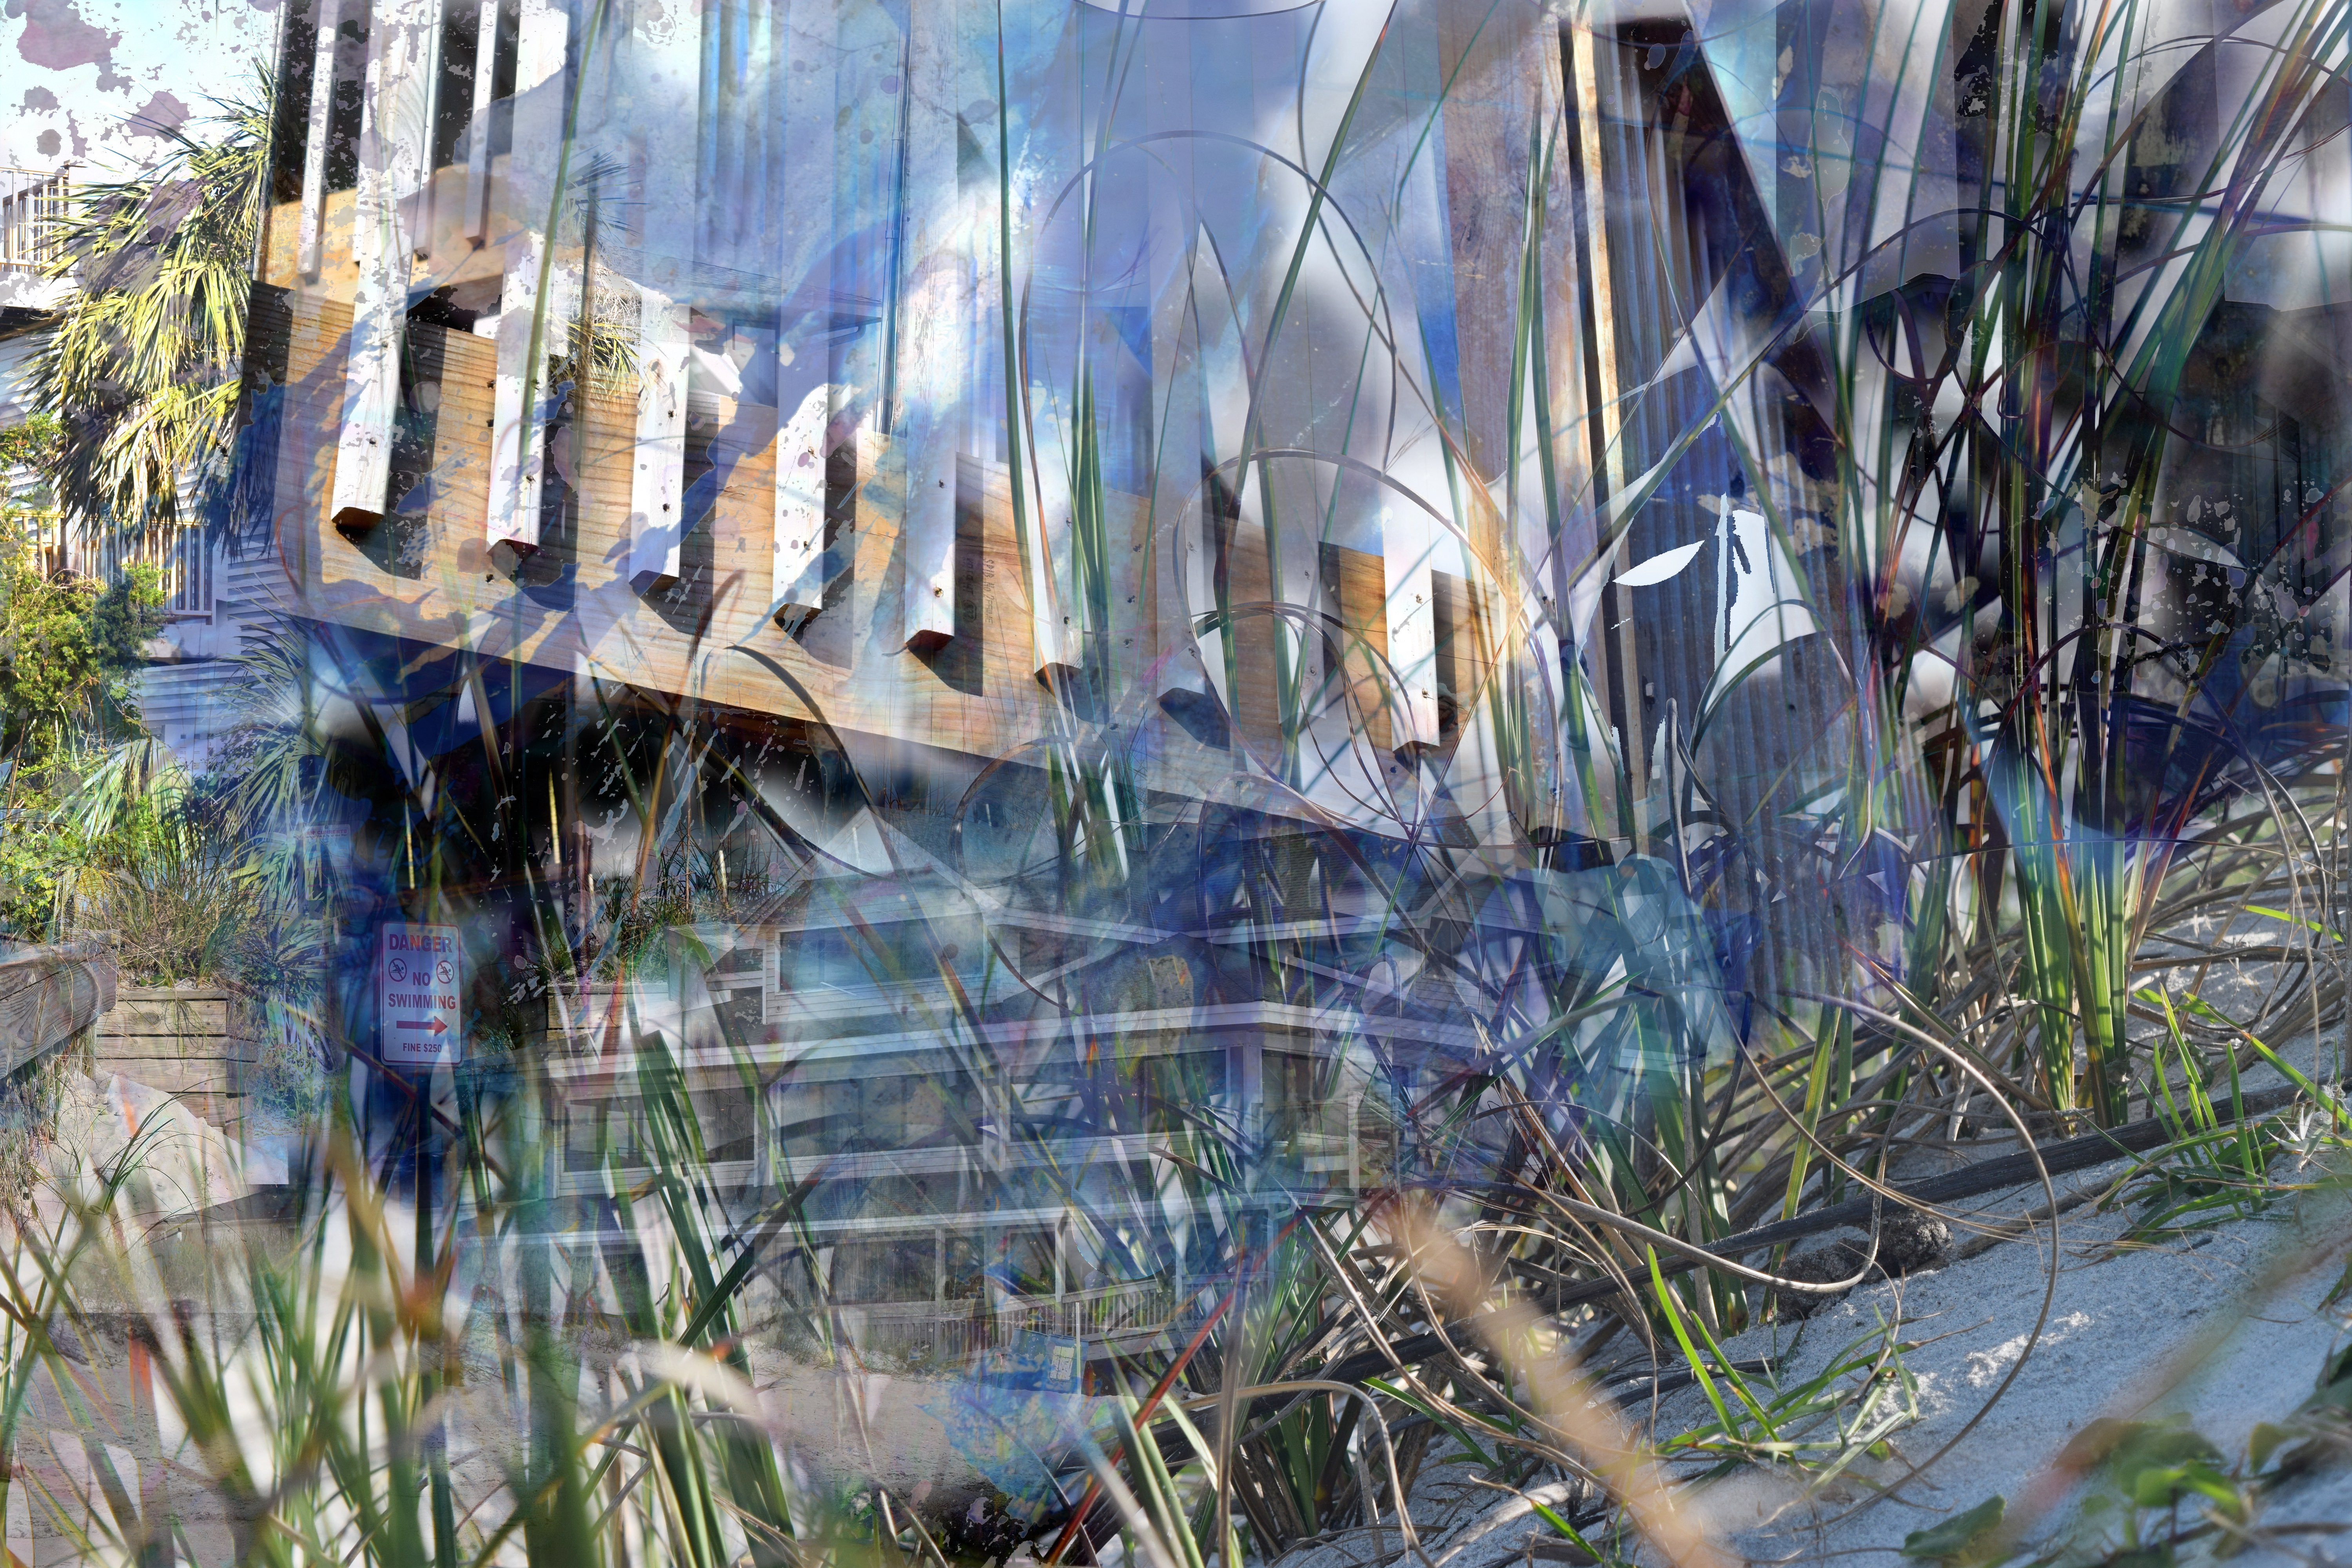 Composite image of bits of architecture and nature in blues, tans, and greens, merging into abstract and shadowy forms.